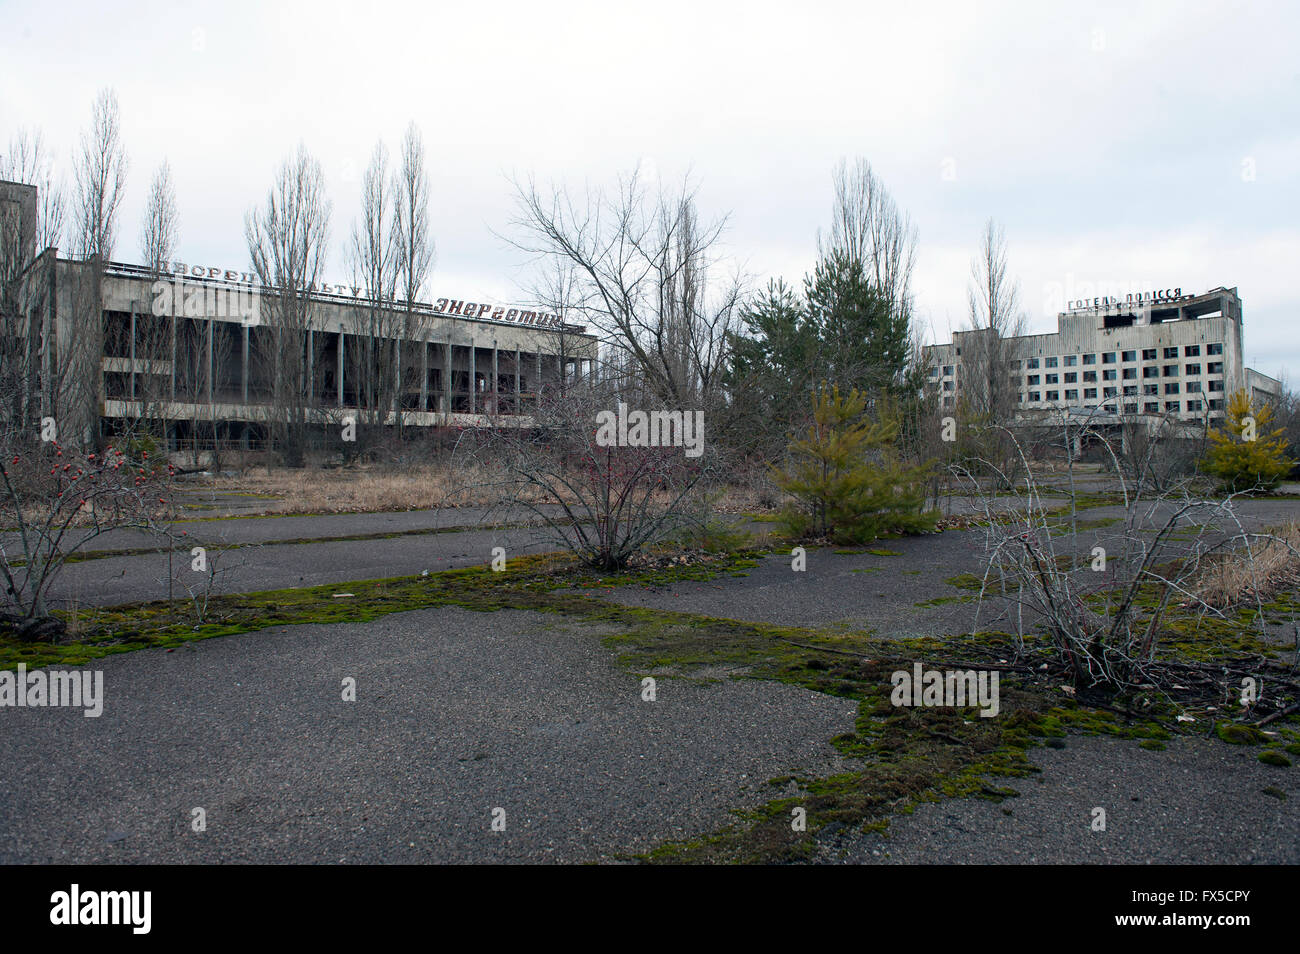 The abandoned city of Pripyat, Ukraine. Pripyat was abandoned following the Chernobyl nuclear disaster. - Stock Image